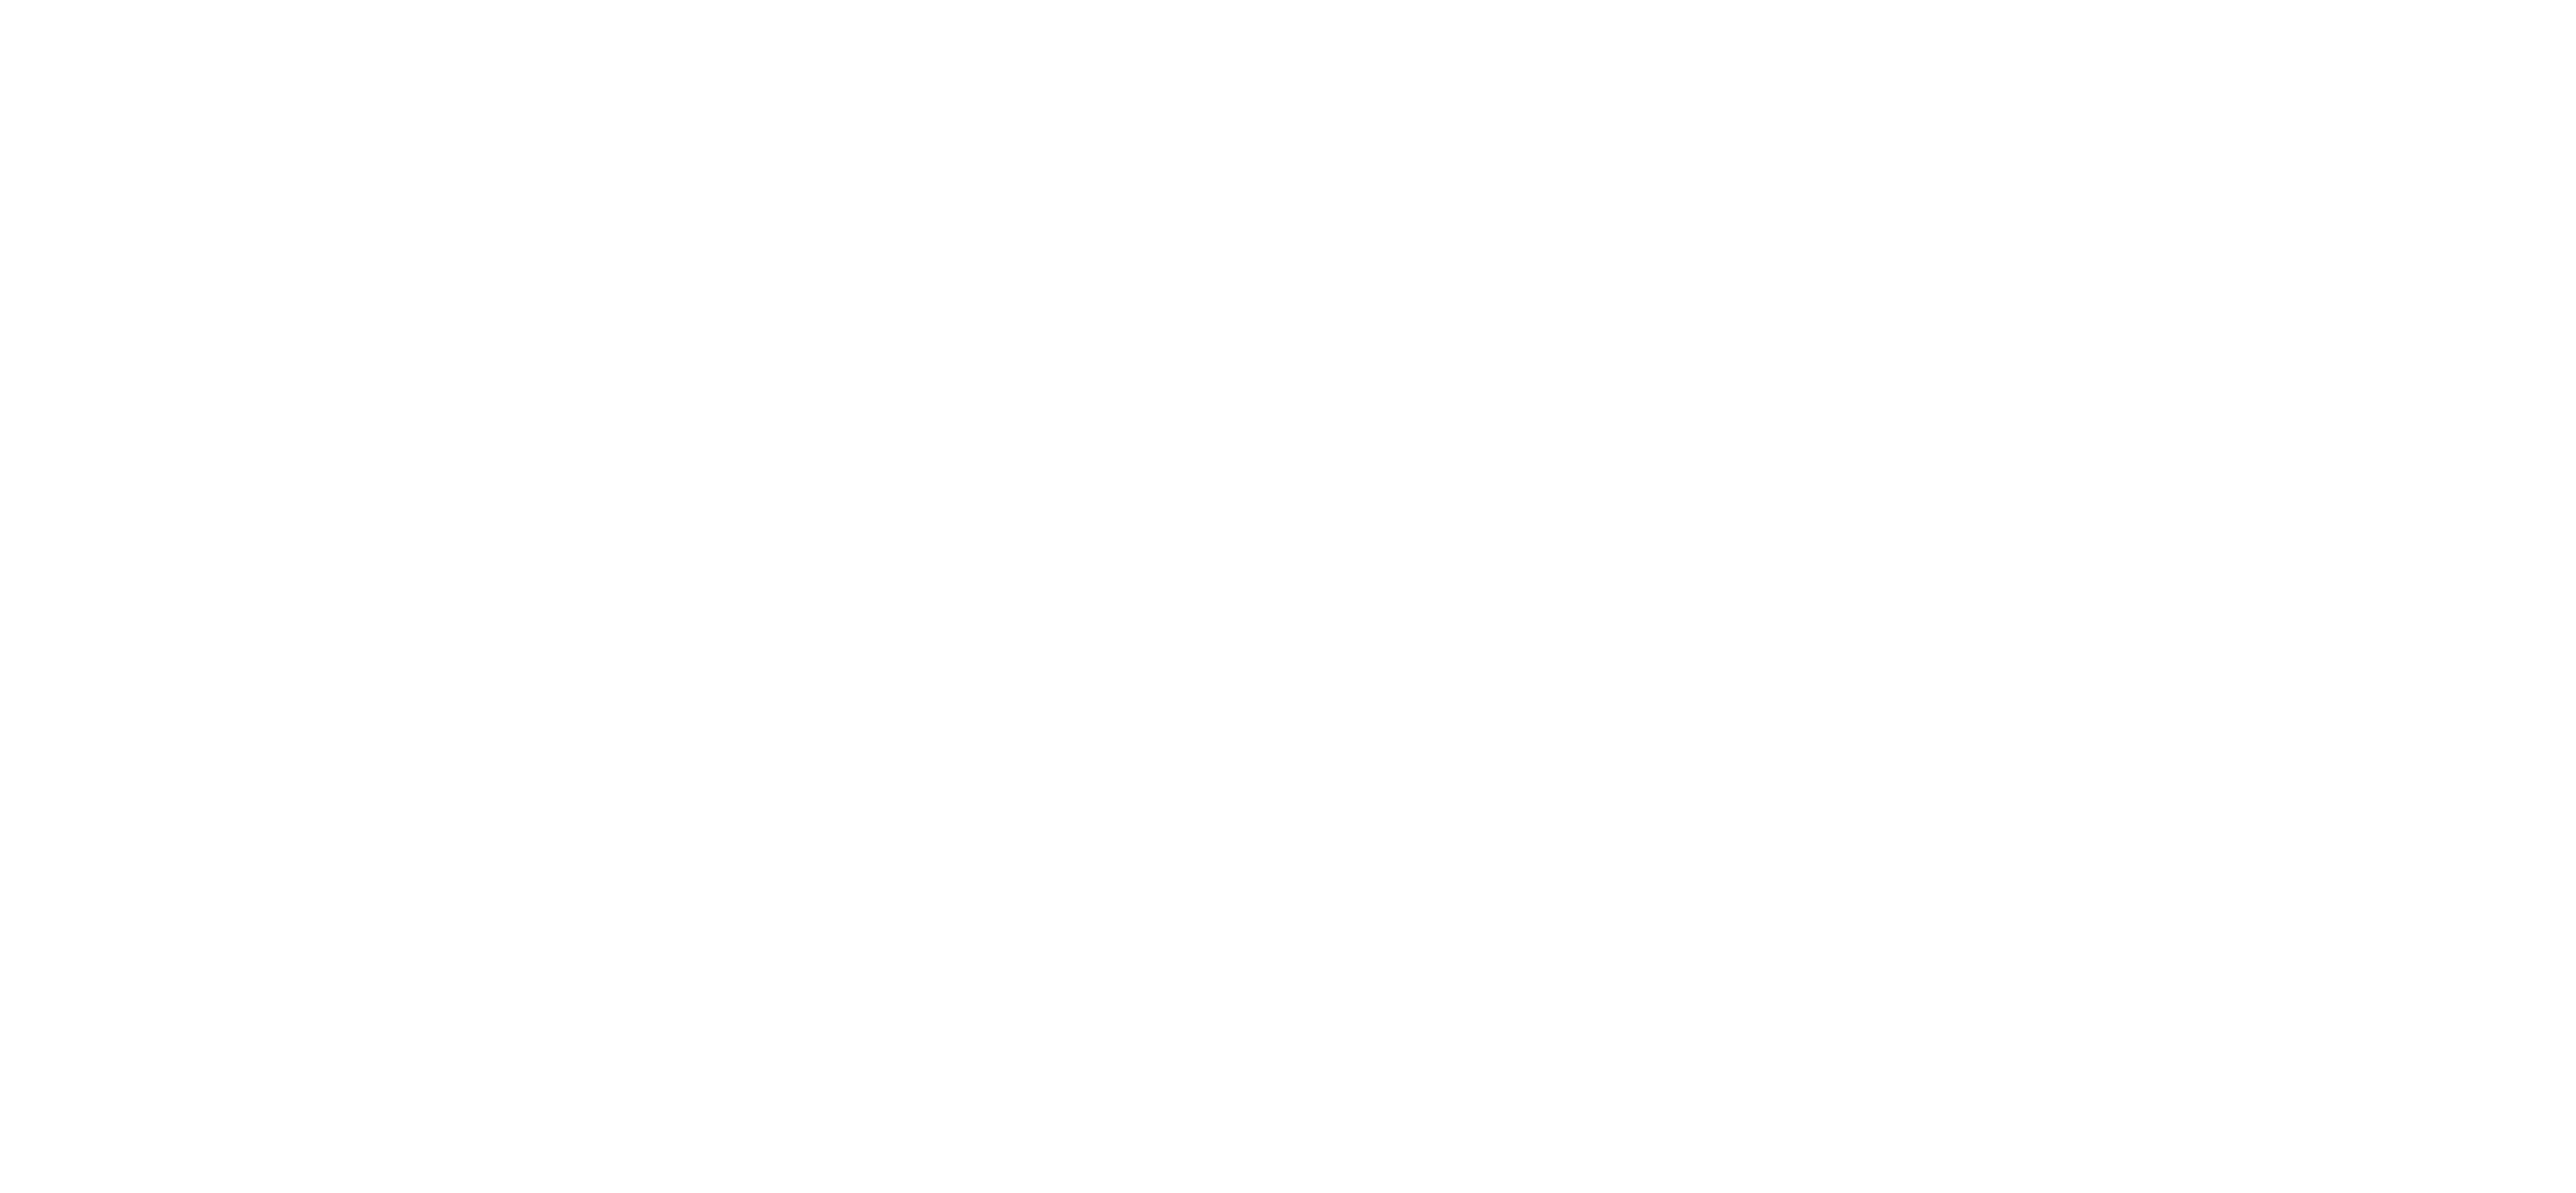 ALL WELCOME